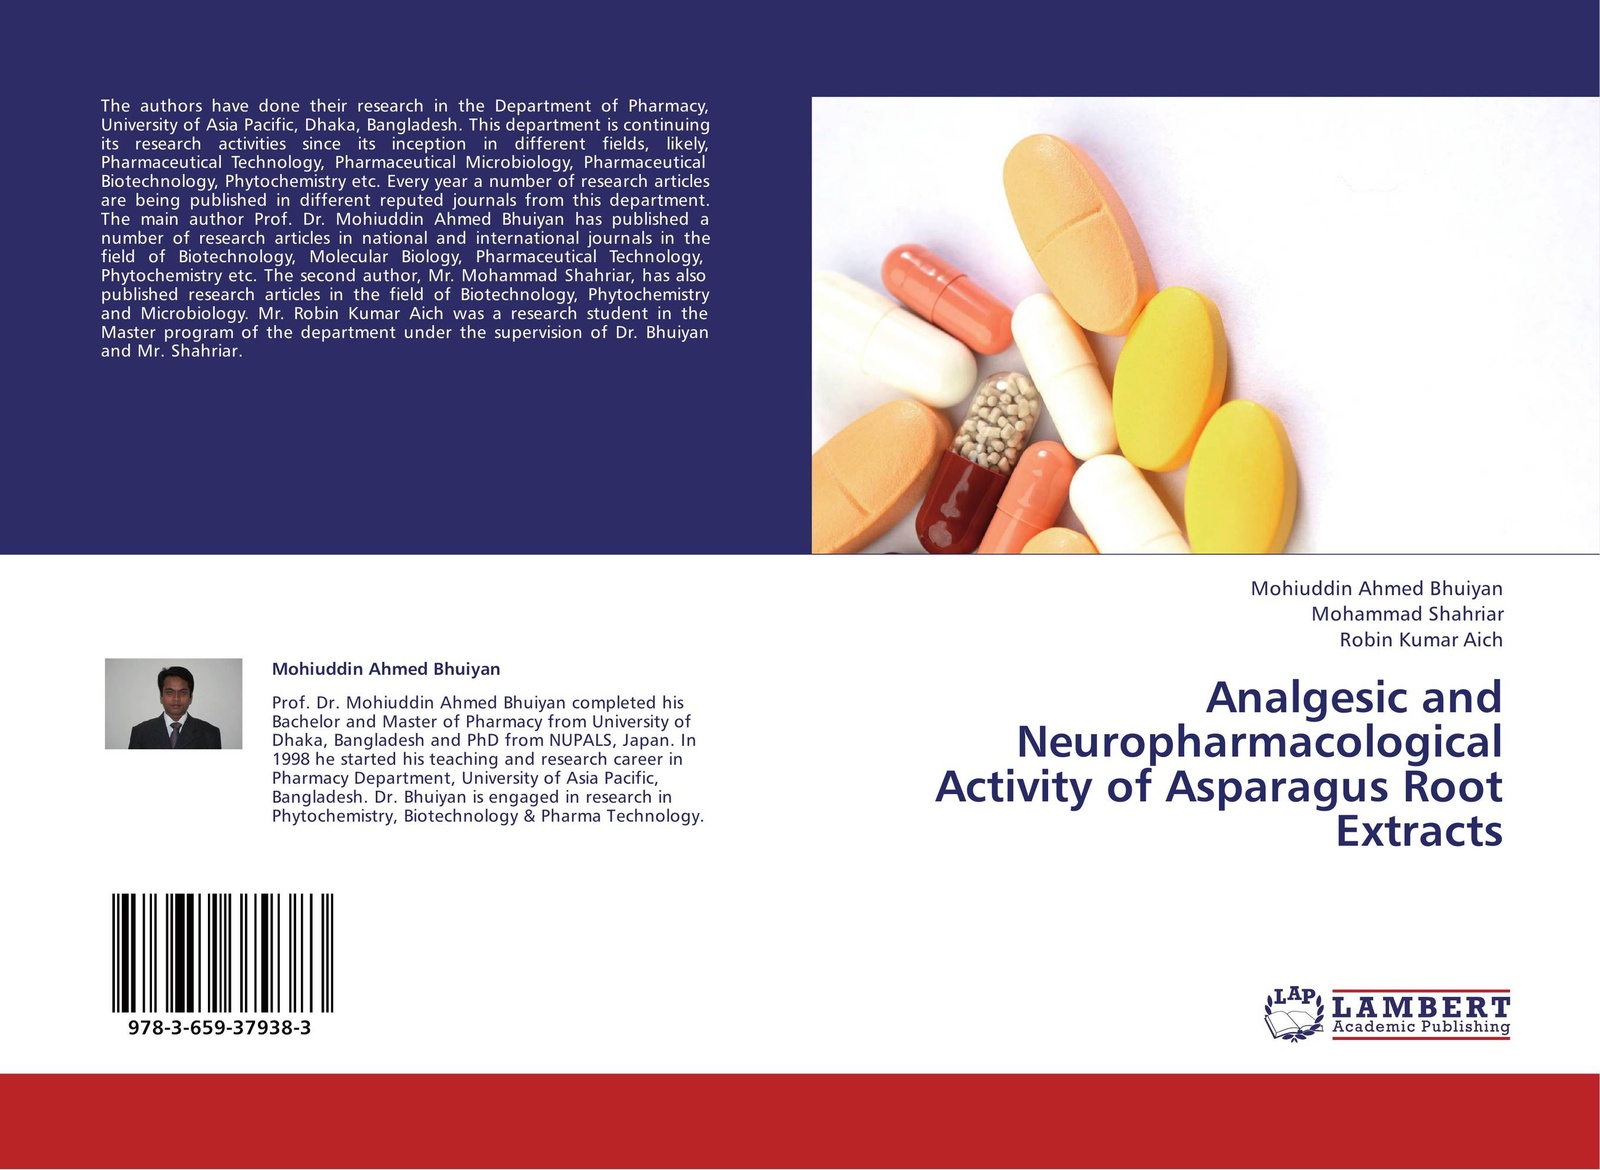 Mohiuddin Ahmed Bhuiyan,Mohammad Shahriar and Robin Kumar Aich Analgesic and Neuropharmacological Activity of Asparagus Root Extracts nap national academy press research priorities in tropical biology